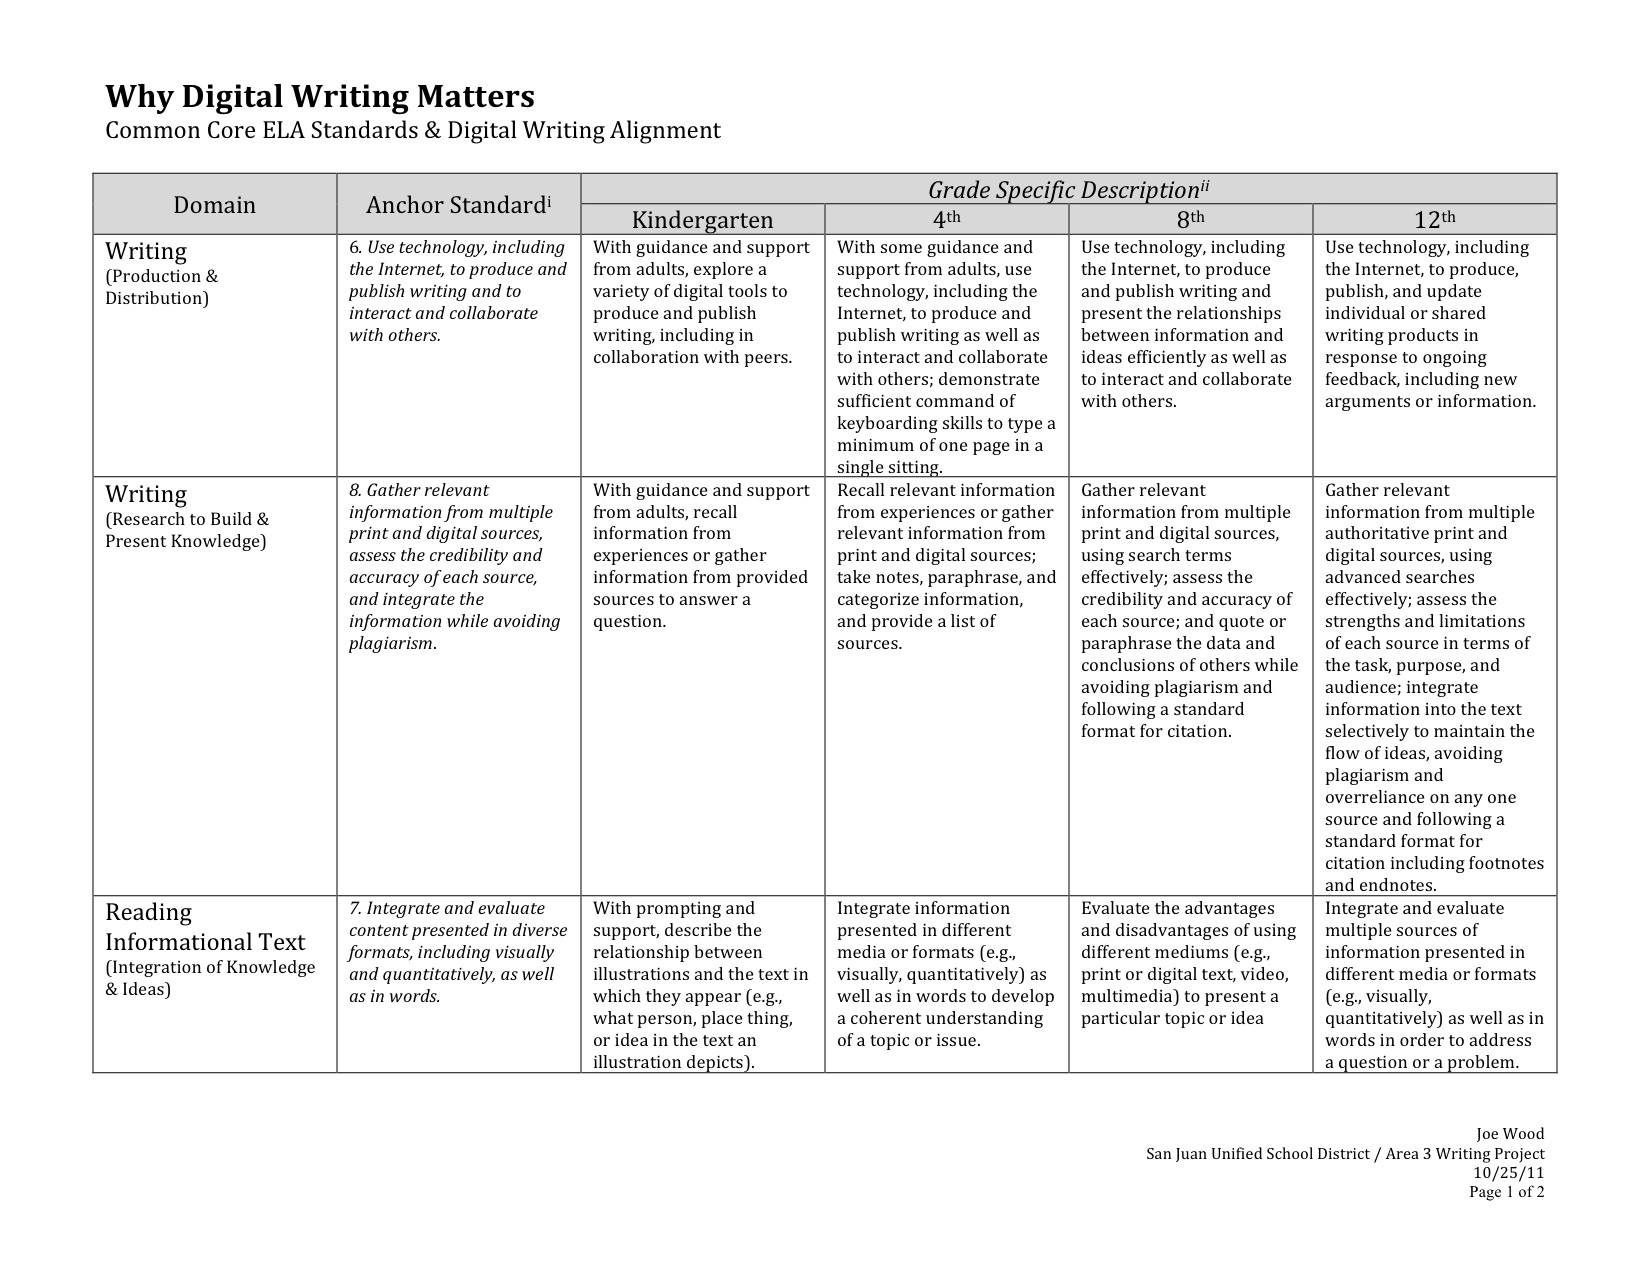 007 Why Digital Writing Matters According To The Common Core Ela Standards1 Research Paper High School Physics Unforgettable Rubric Full